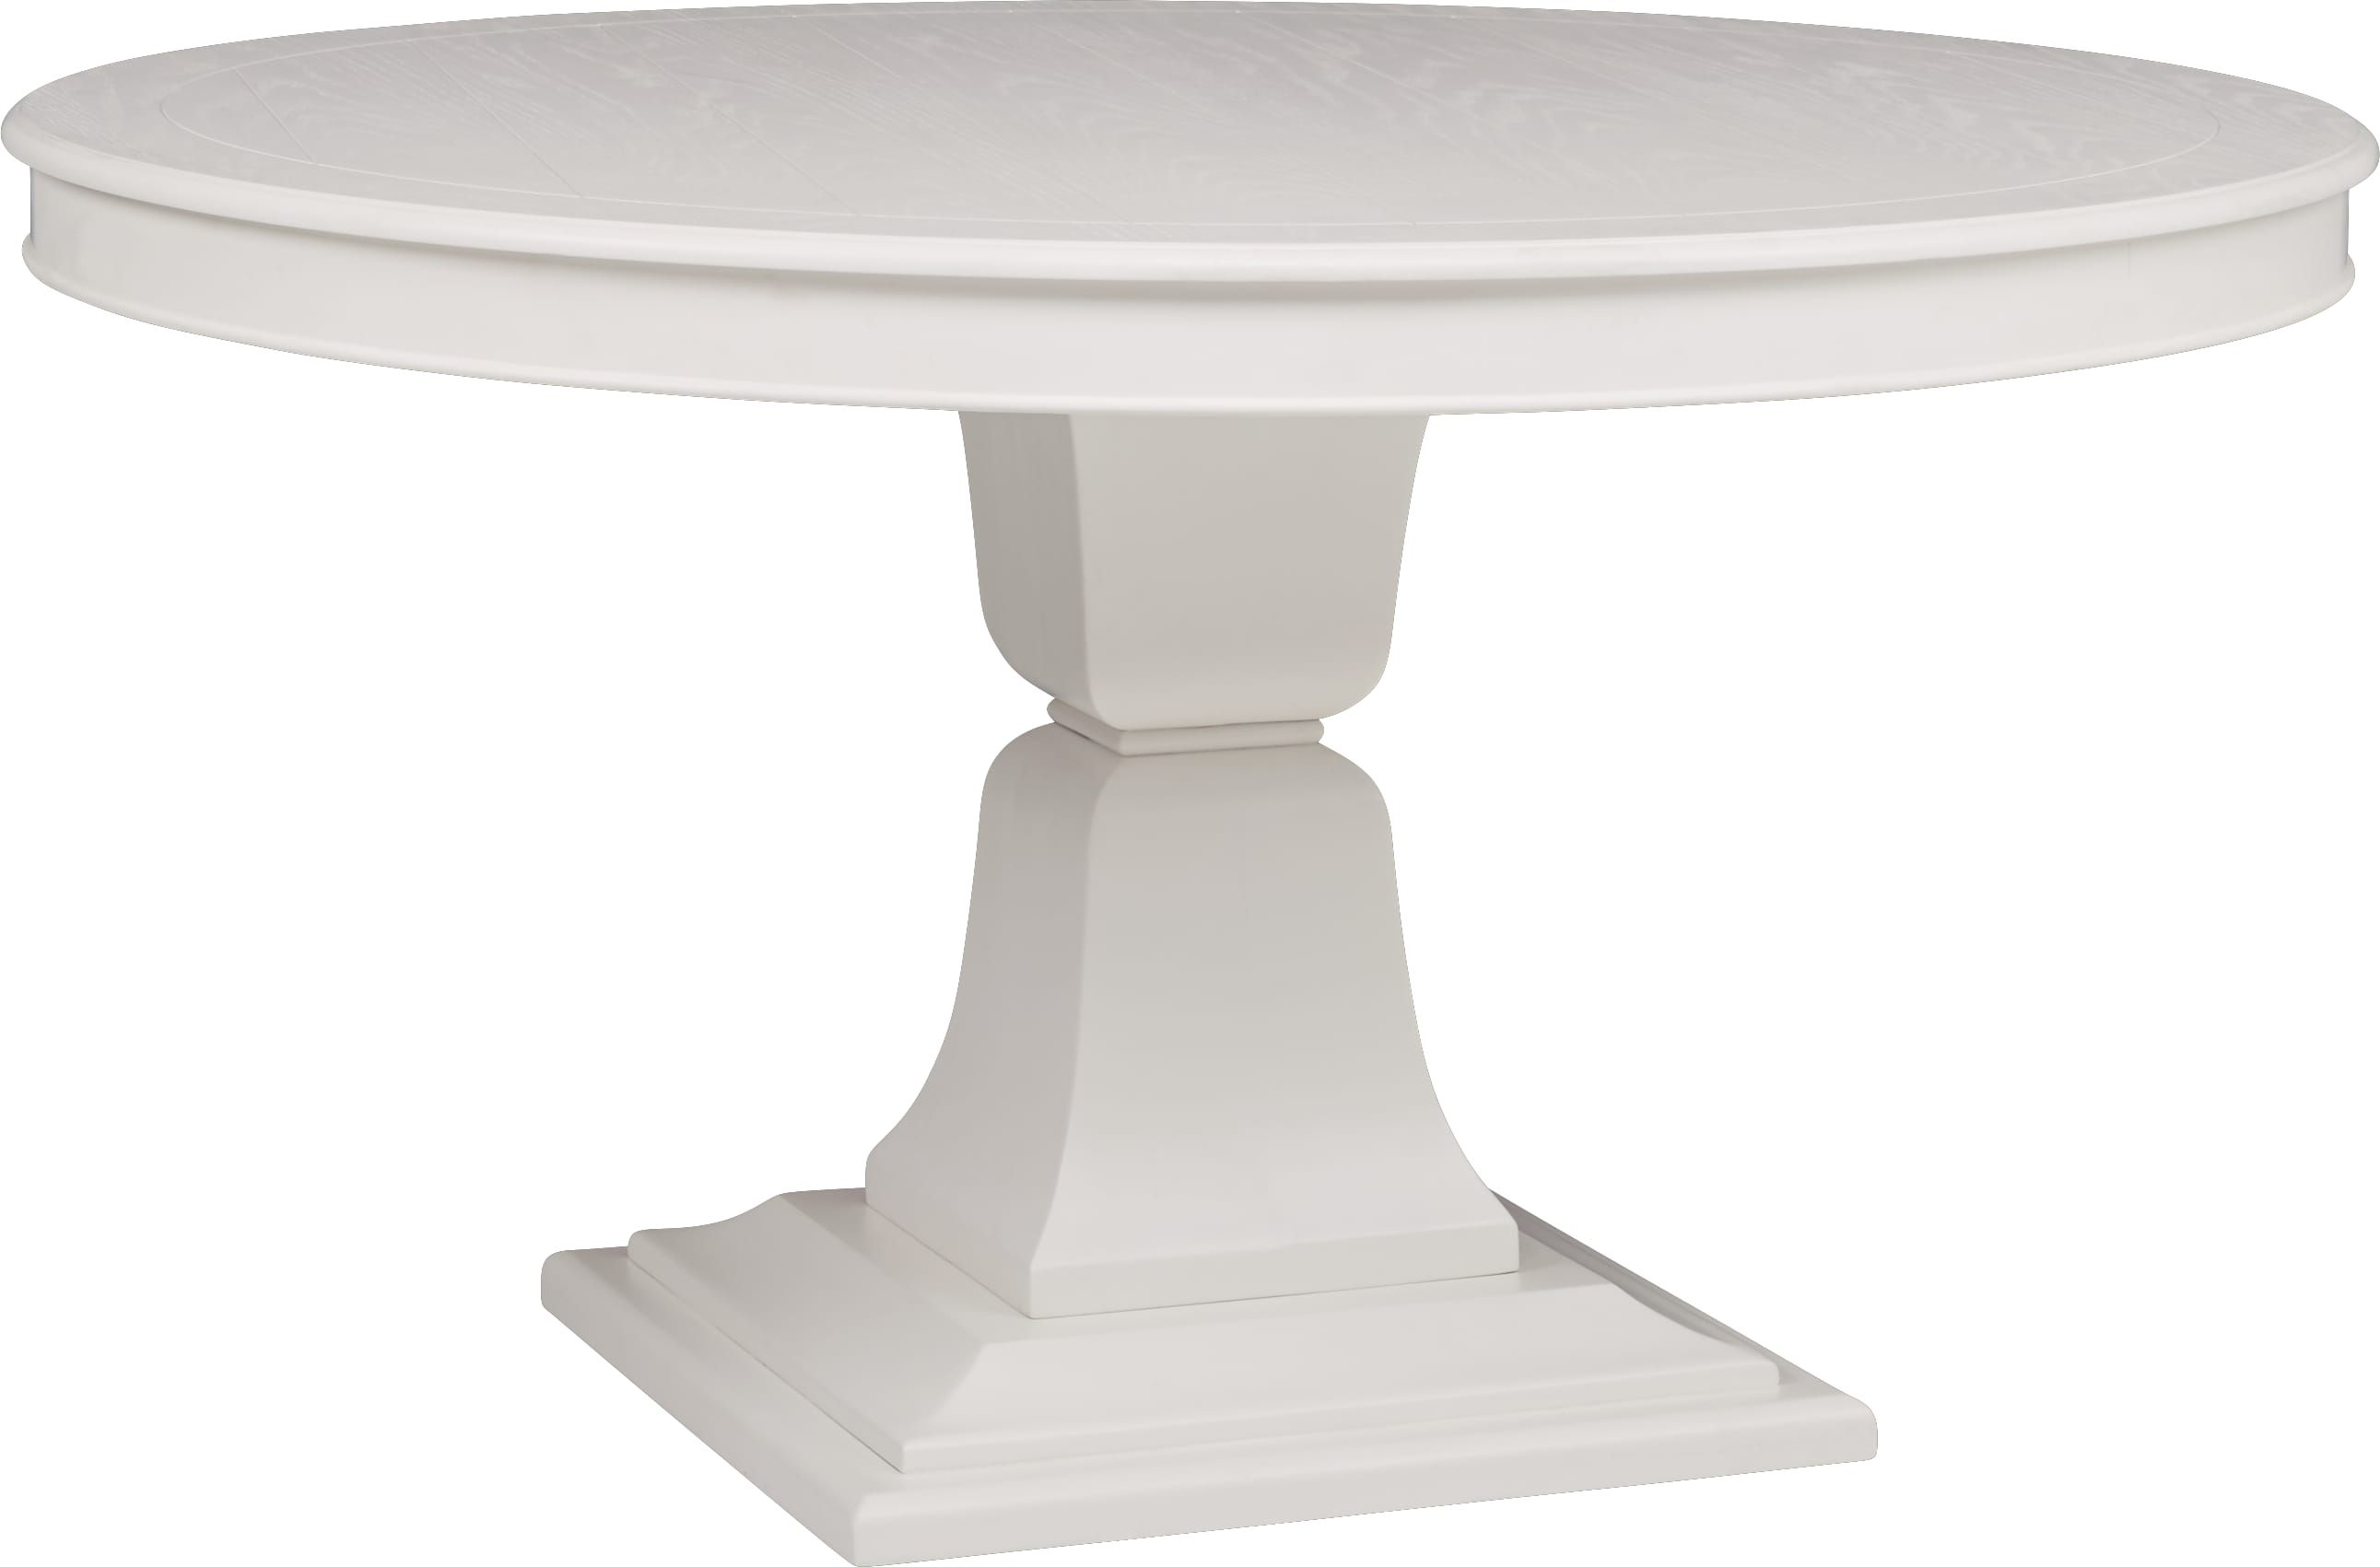 Cindy Crawford Home Cape Cottage White Round Dining Table White Round Dining Table Round Dining Table Cindy Crawford Home